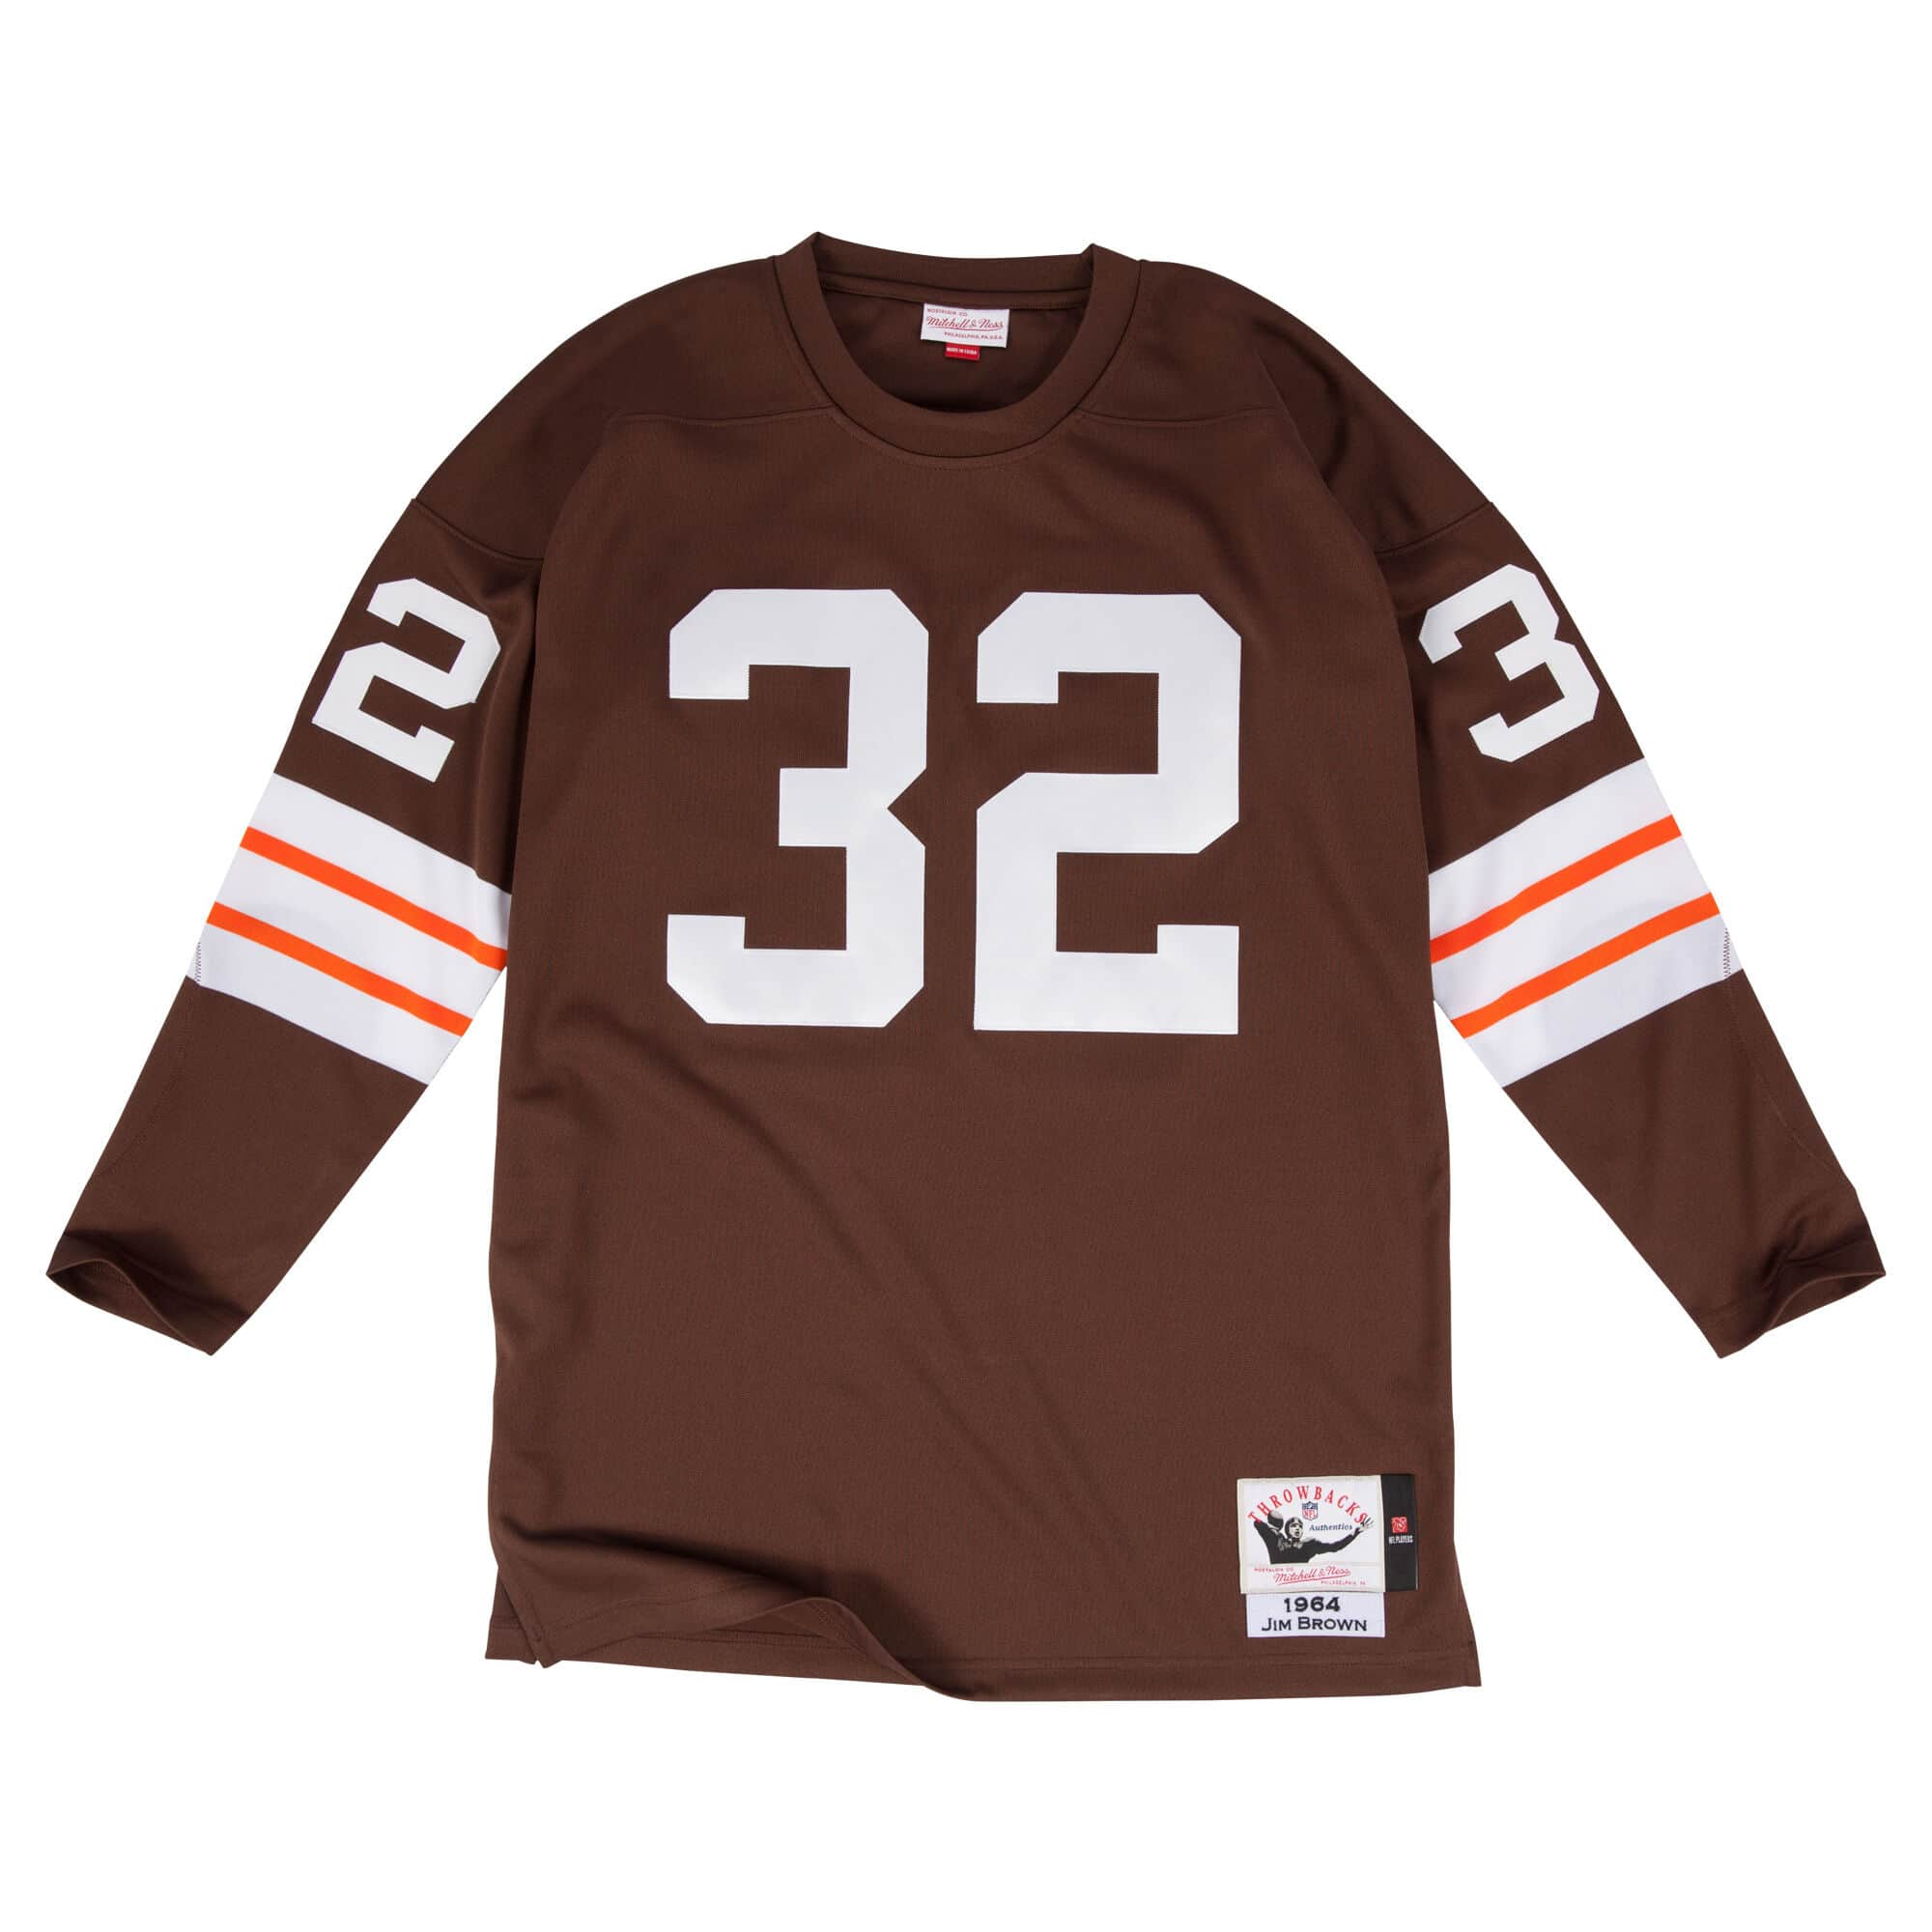 Jim Brown 1964 Authentic Jersey Cleveland Browns